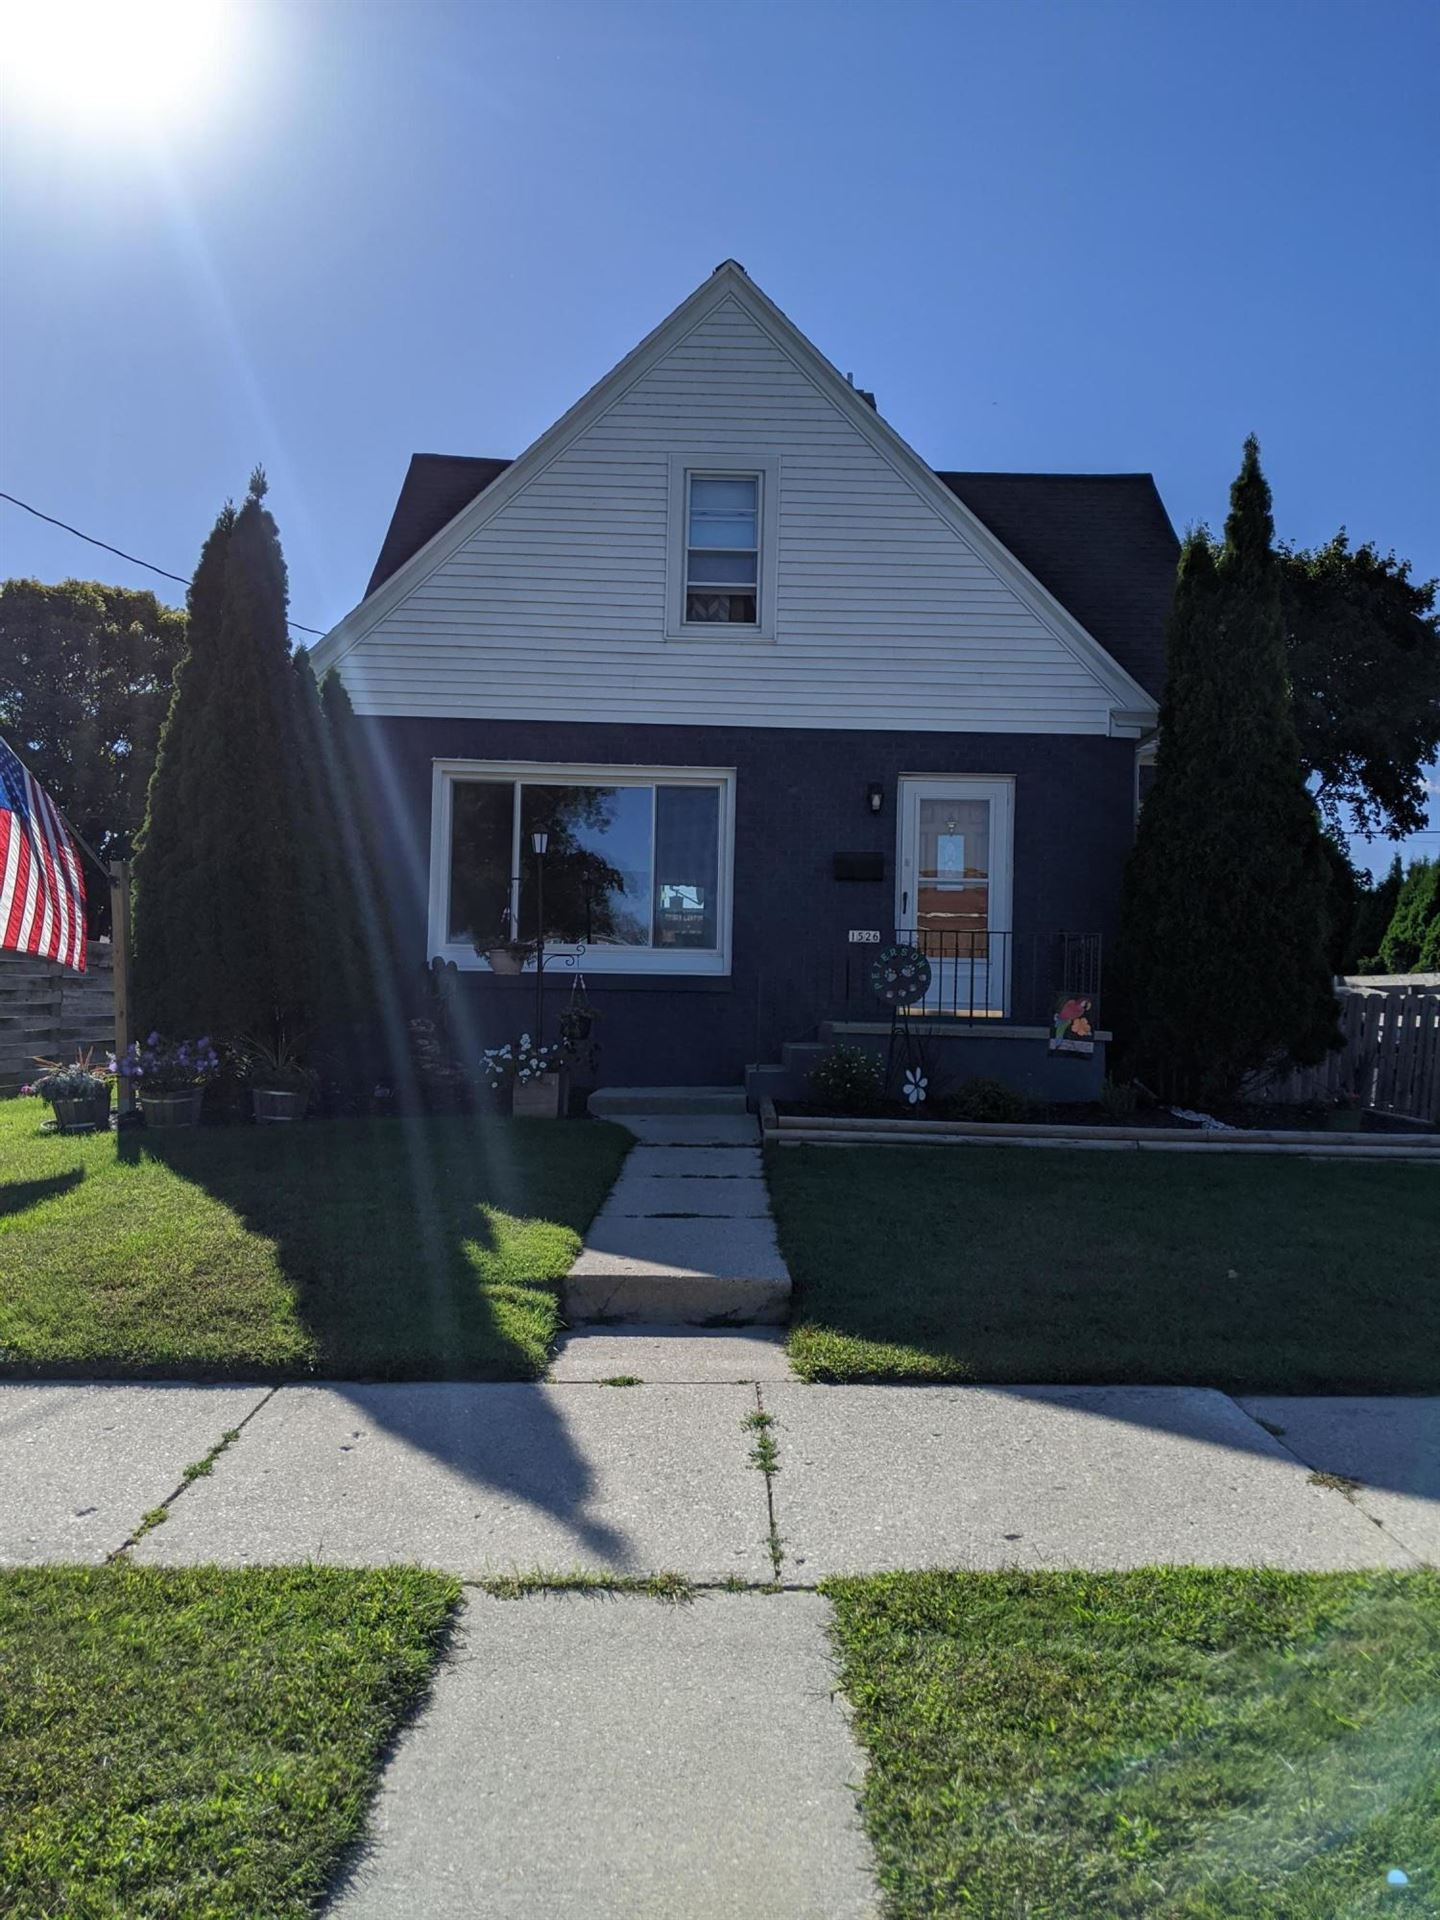 1526 S 23rd St, Manitowoc, WI 54220 - #: 1708891